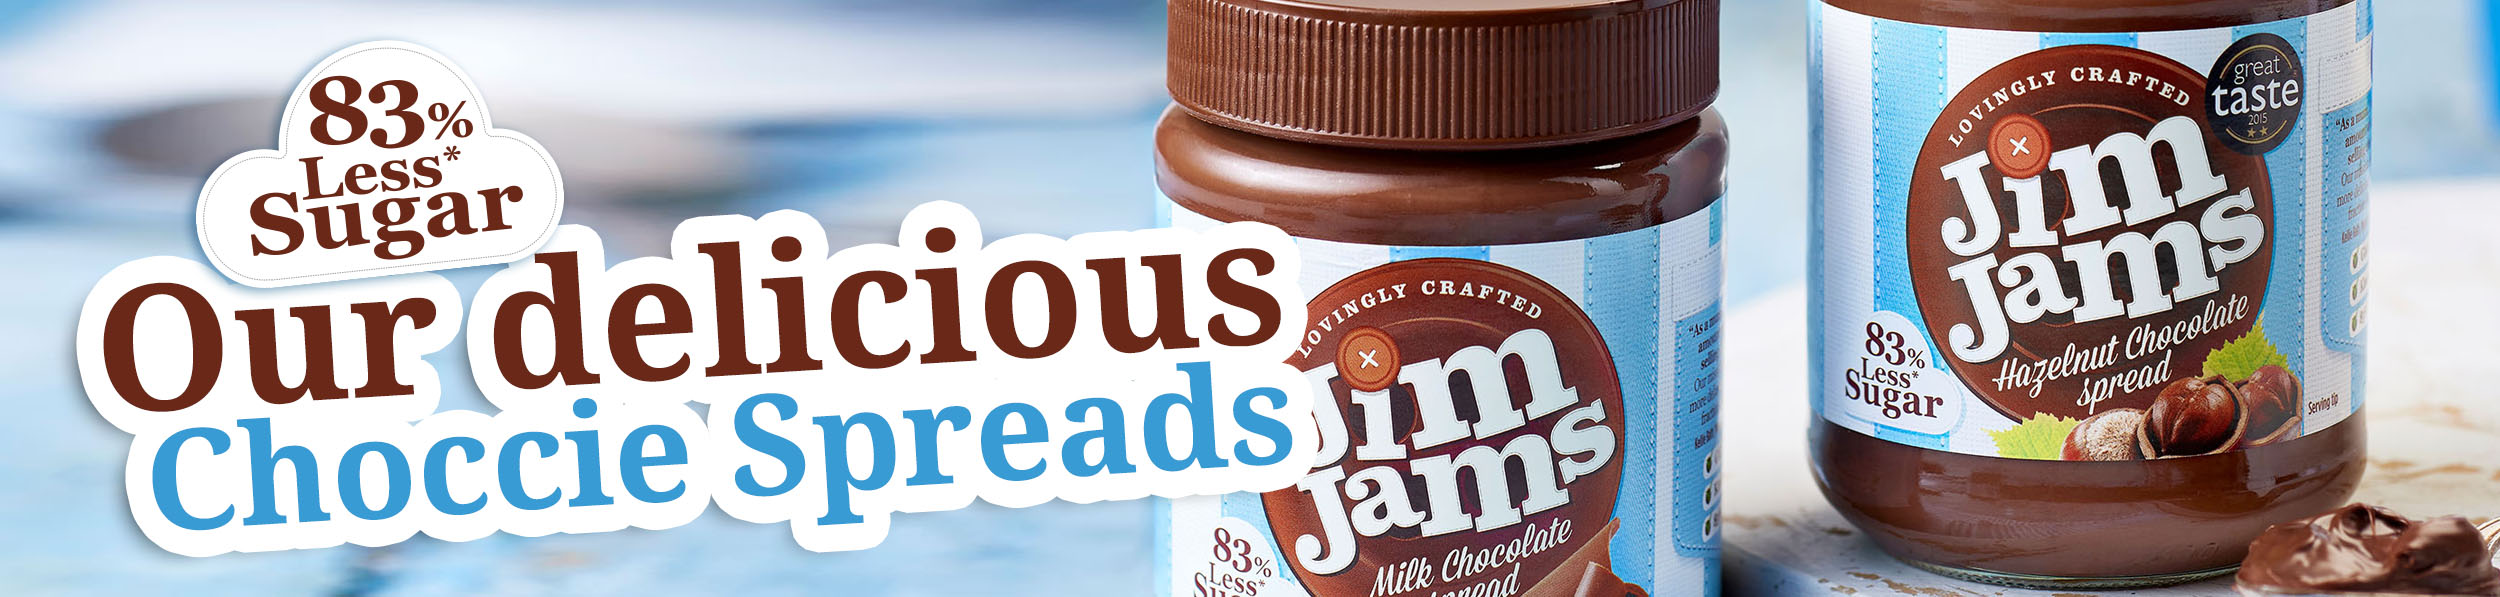 Our delicious choccie spreads